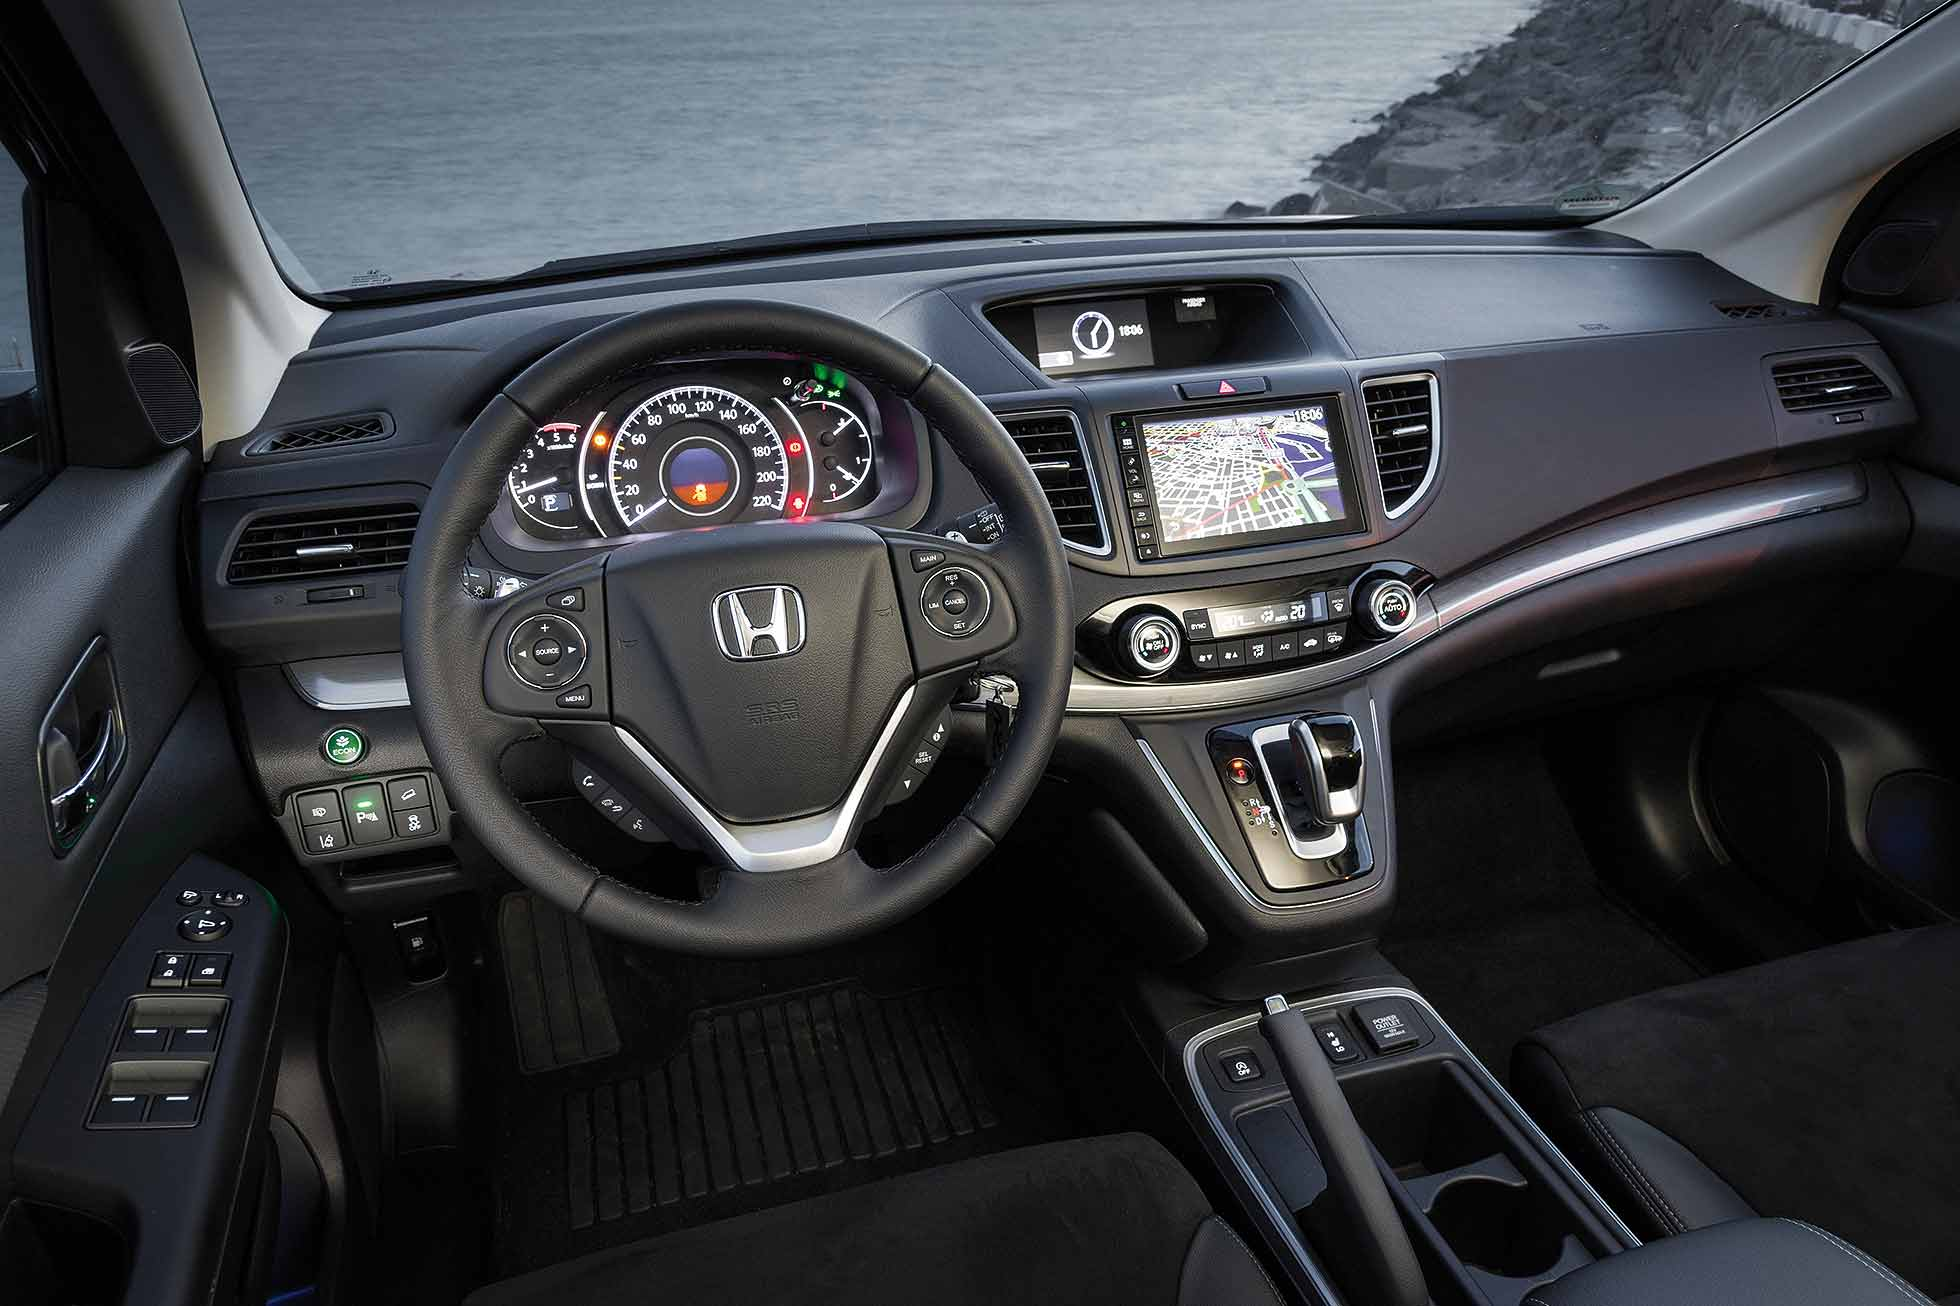 cr v review view lamps lights crv canadian tail front auto honda reviews